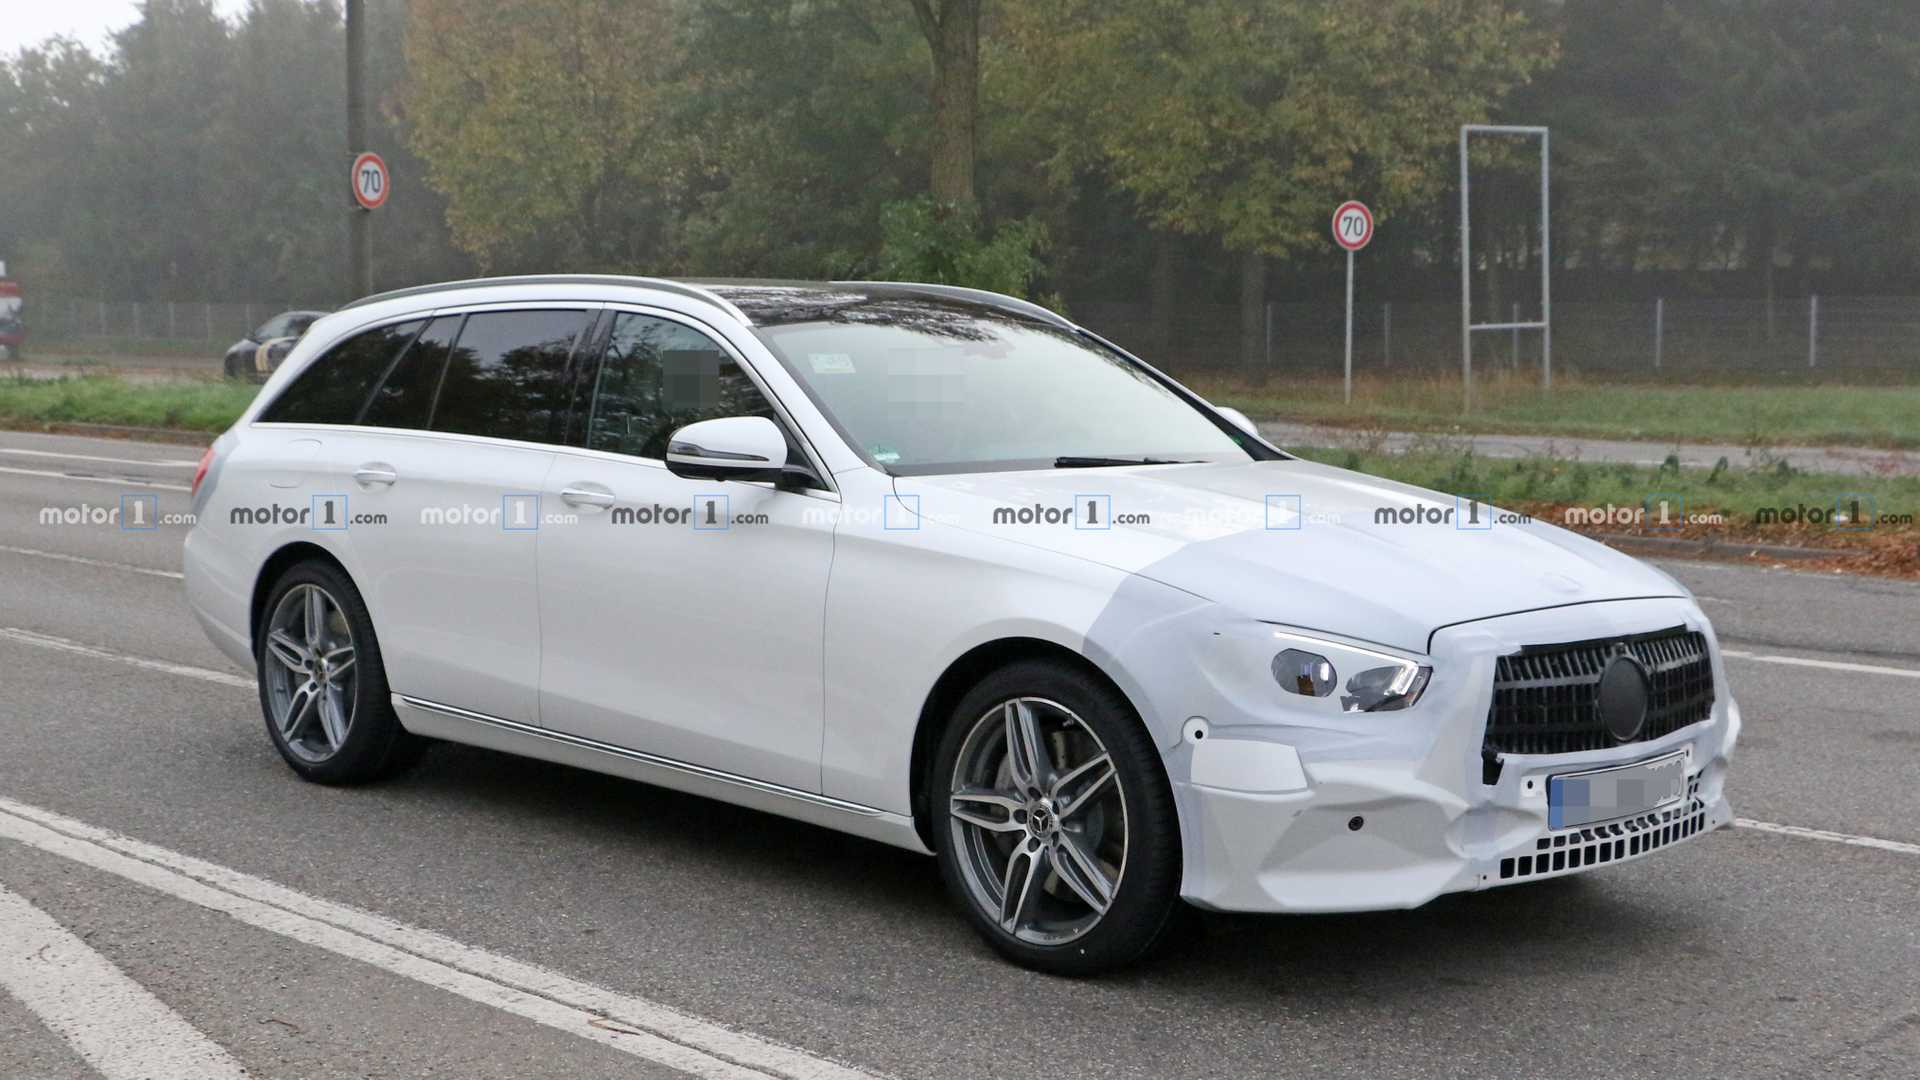 58 Concept of White Mercedes 2020 Exterior by White Mercedes 2020